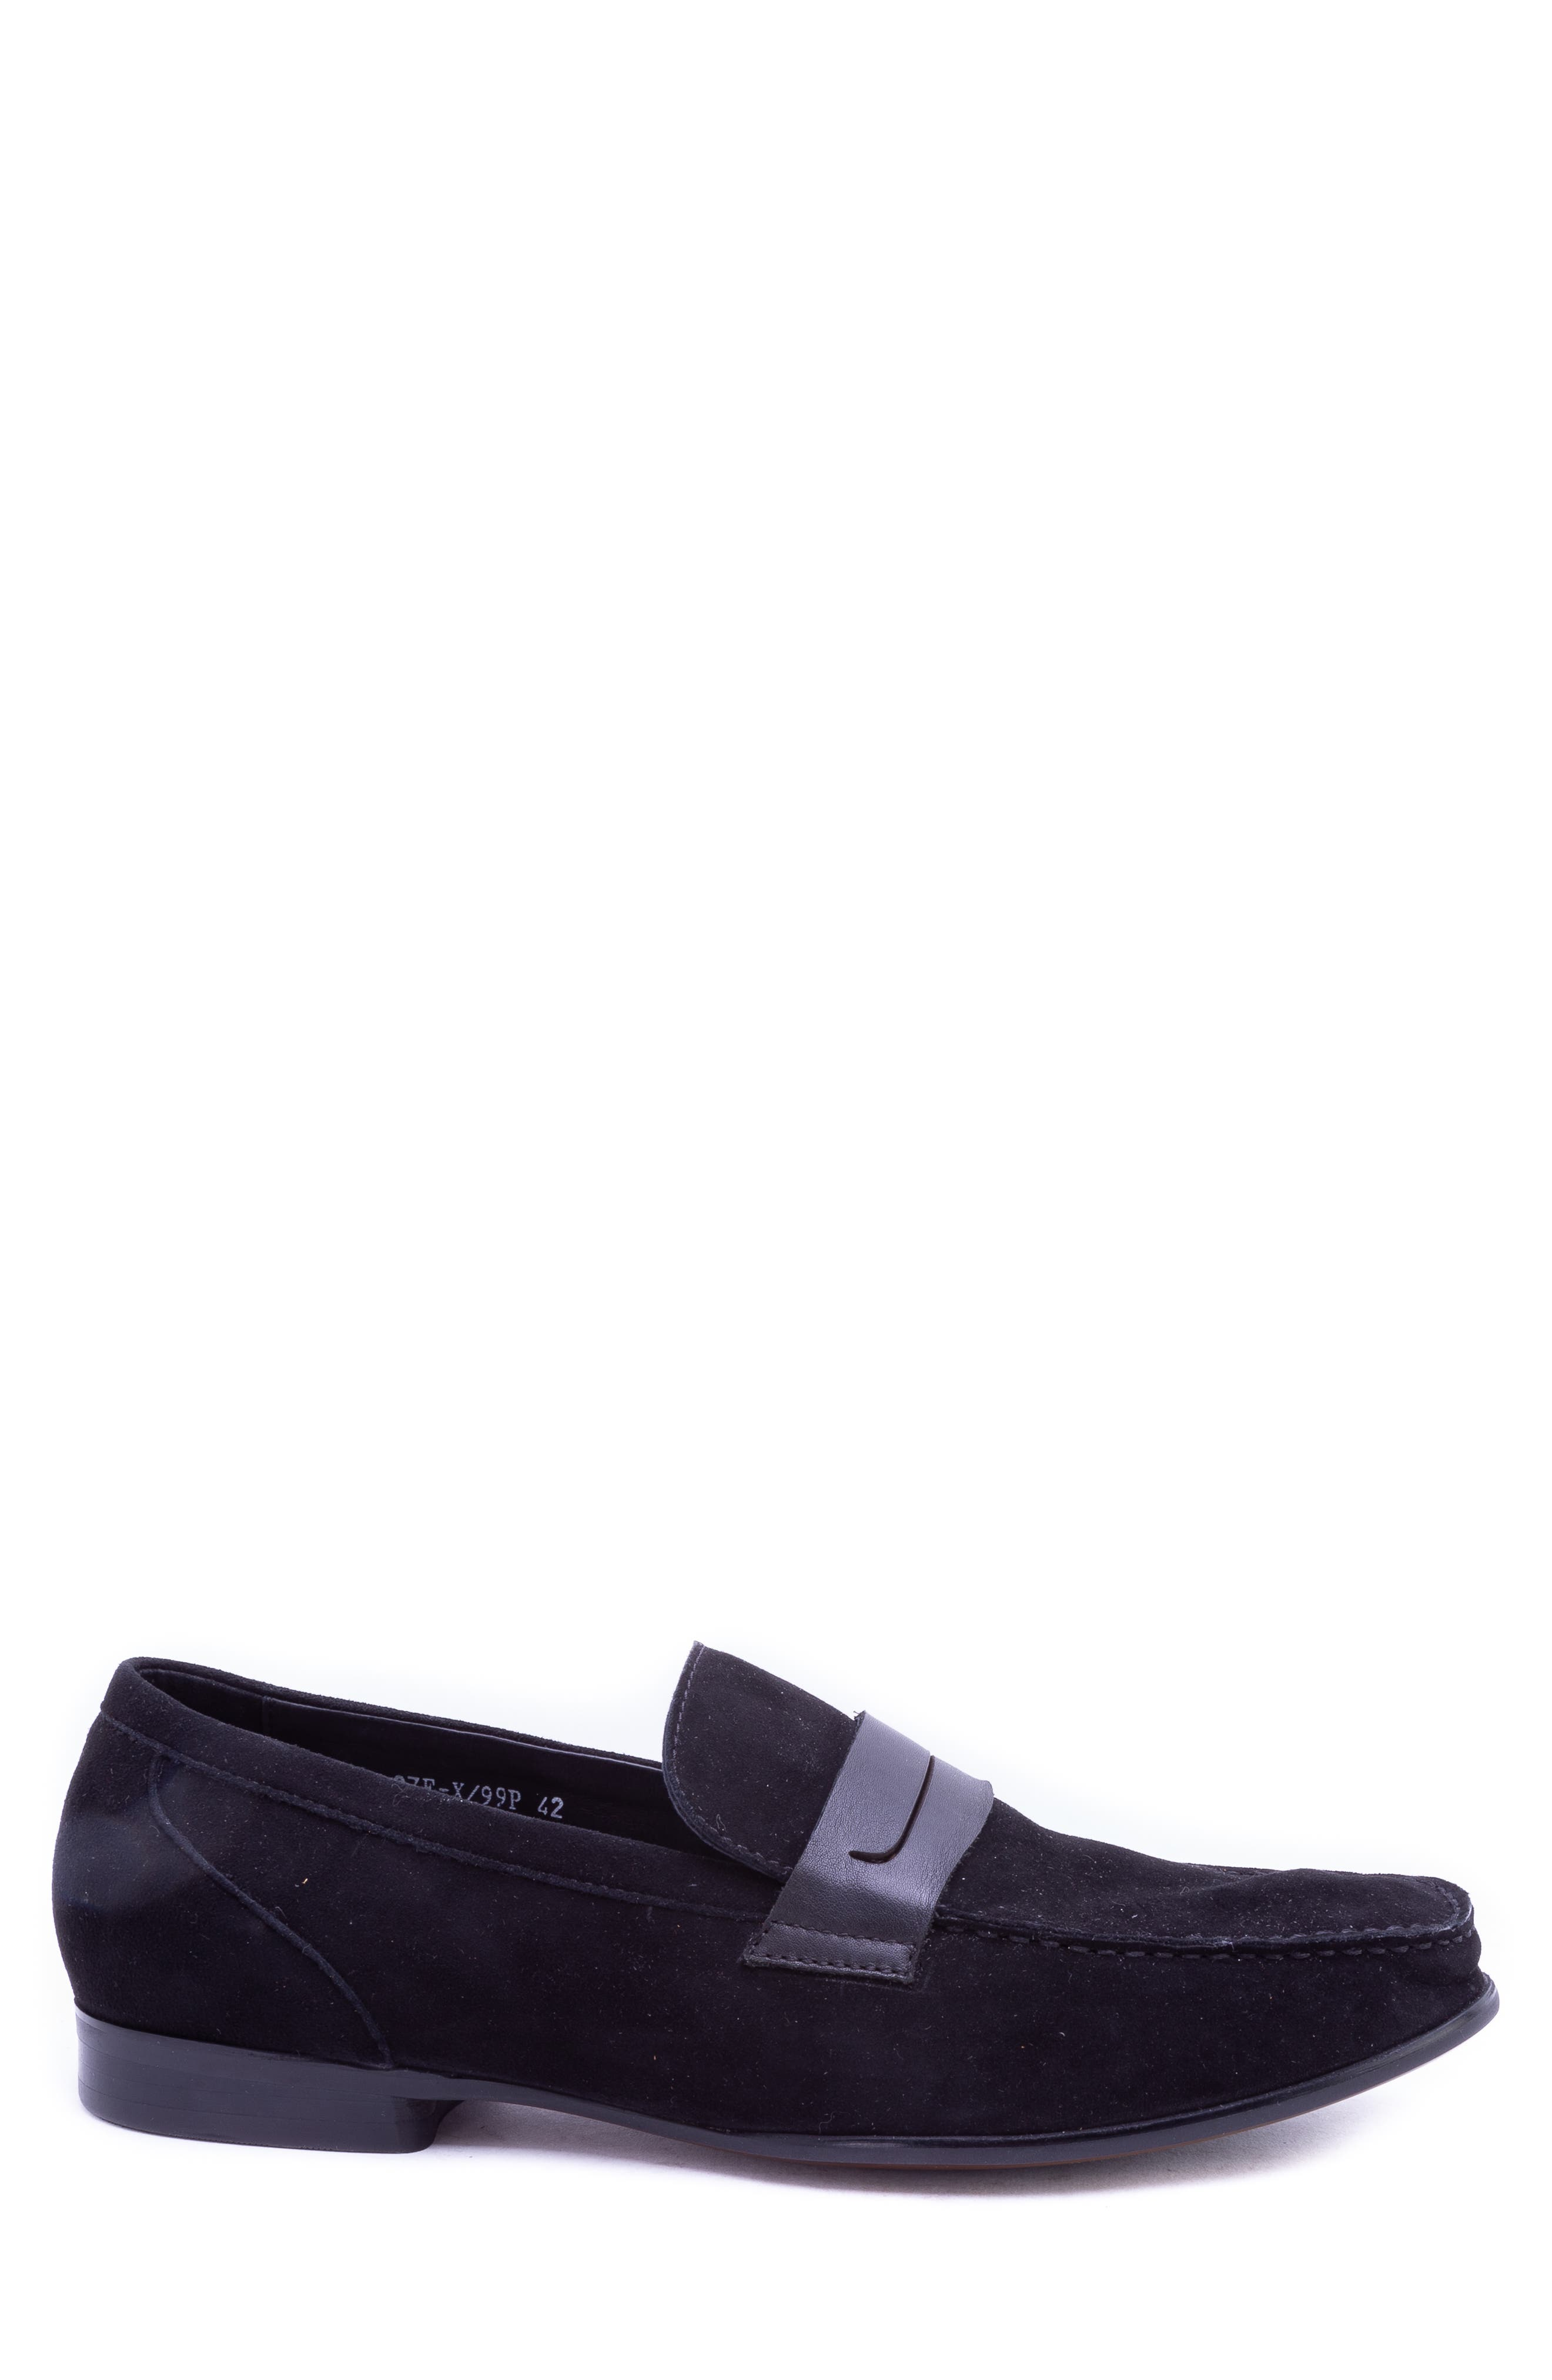 Opie Penny Loafer,                             Alternate thumbnail 3, color,                             BLACK SUEDE/ LEATHER